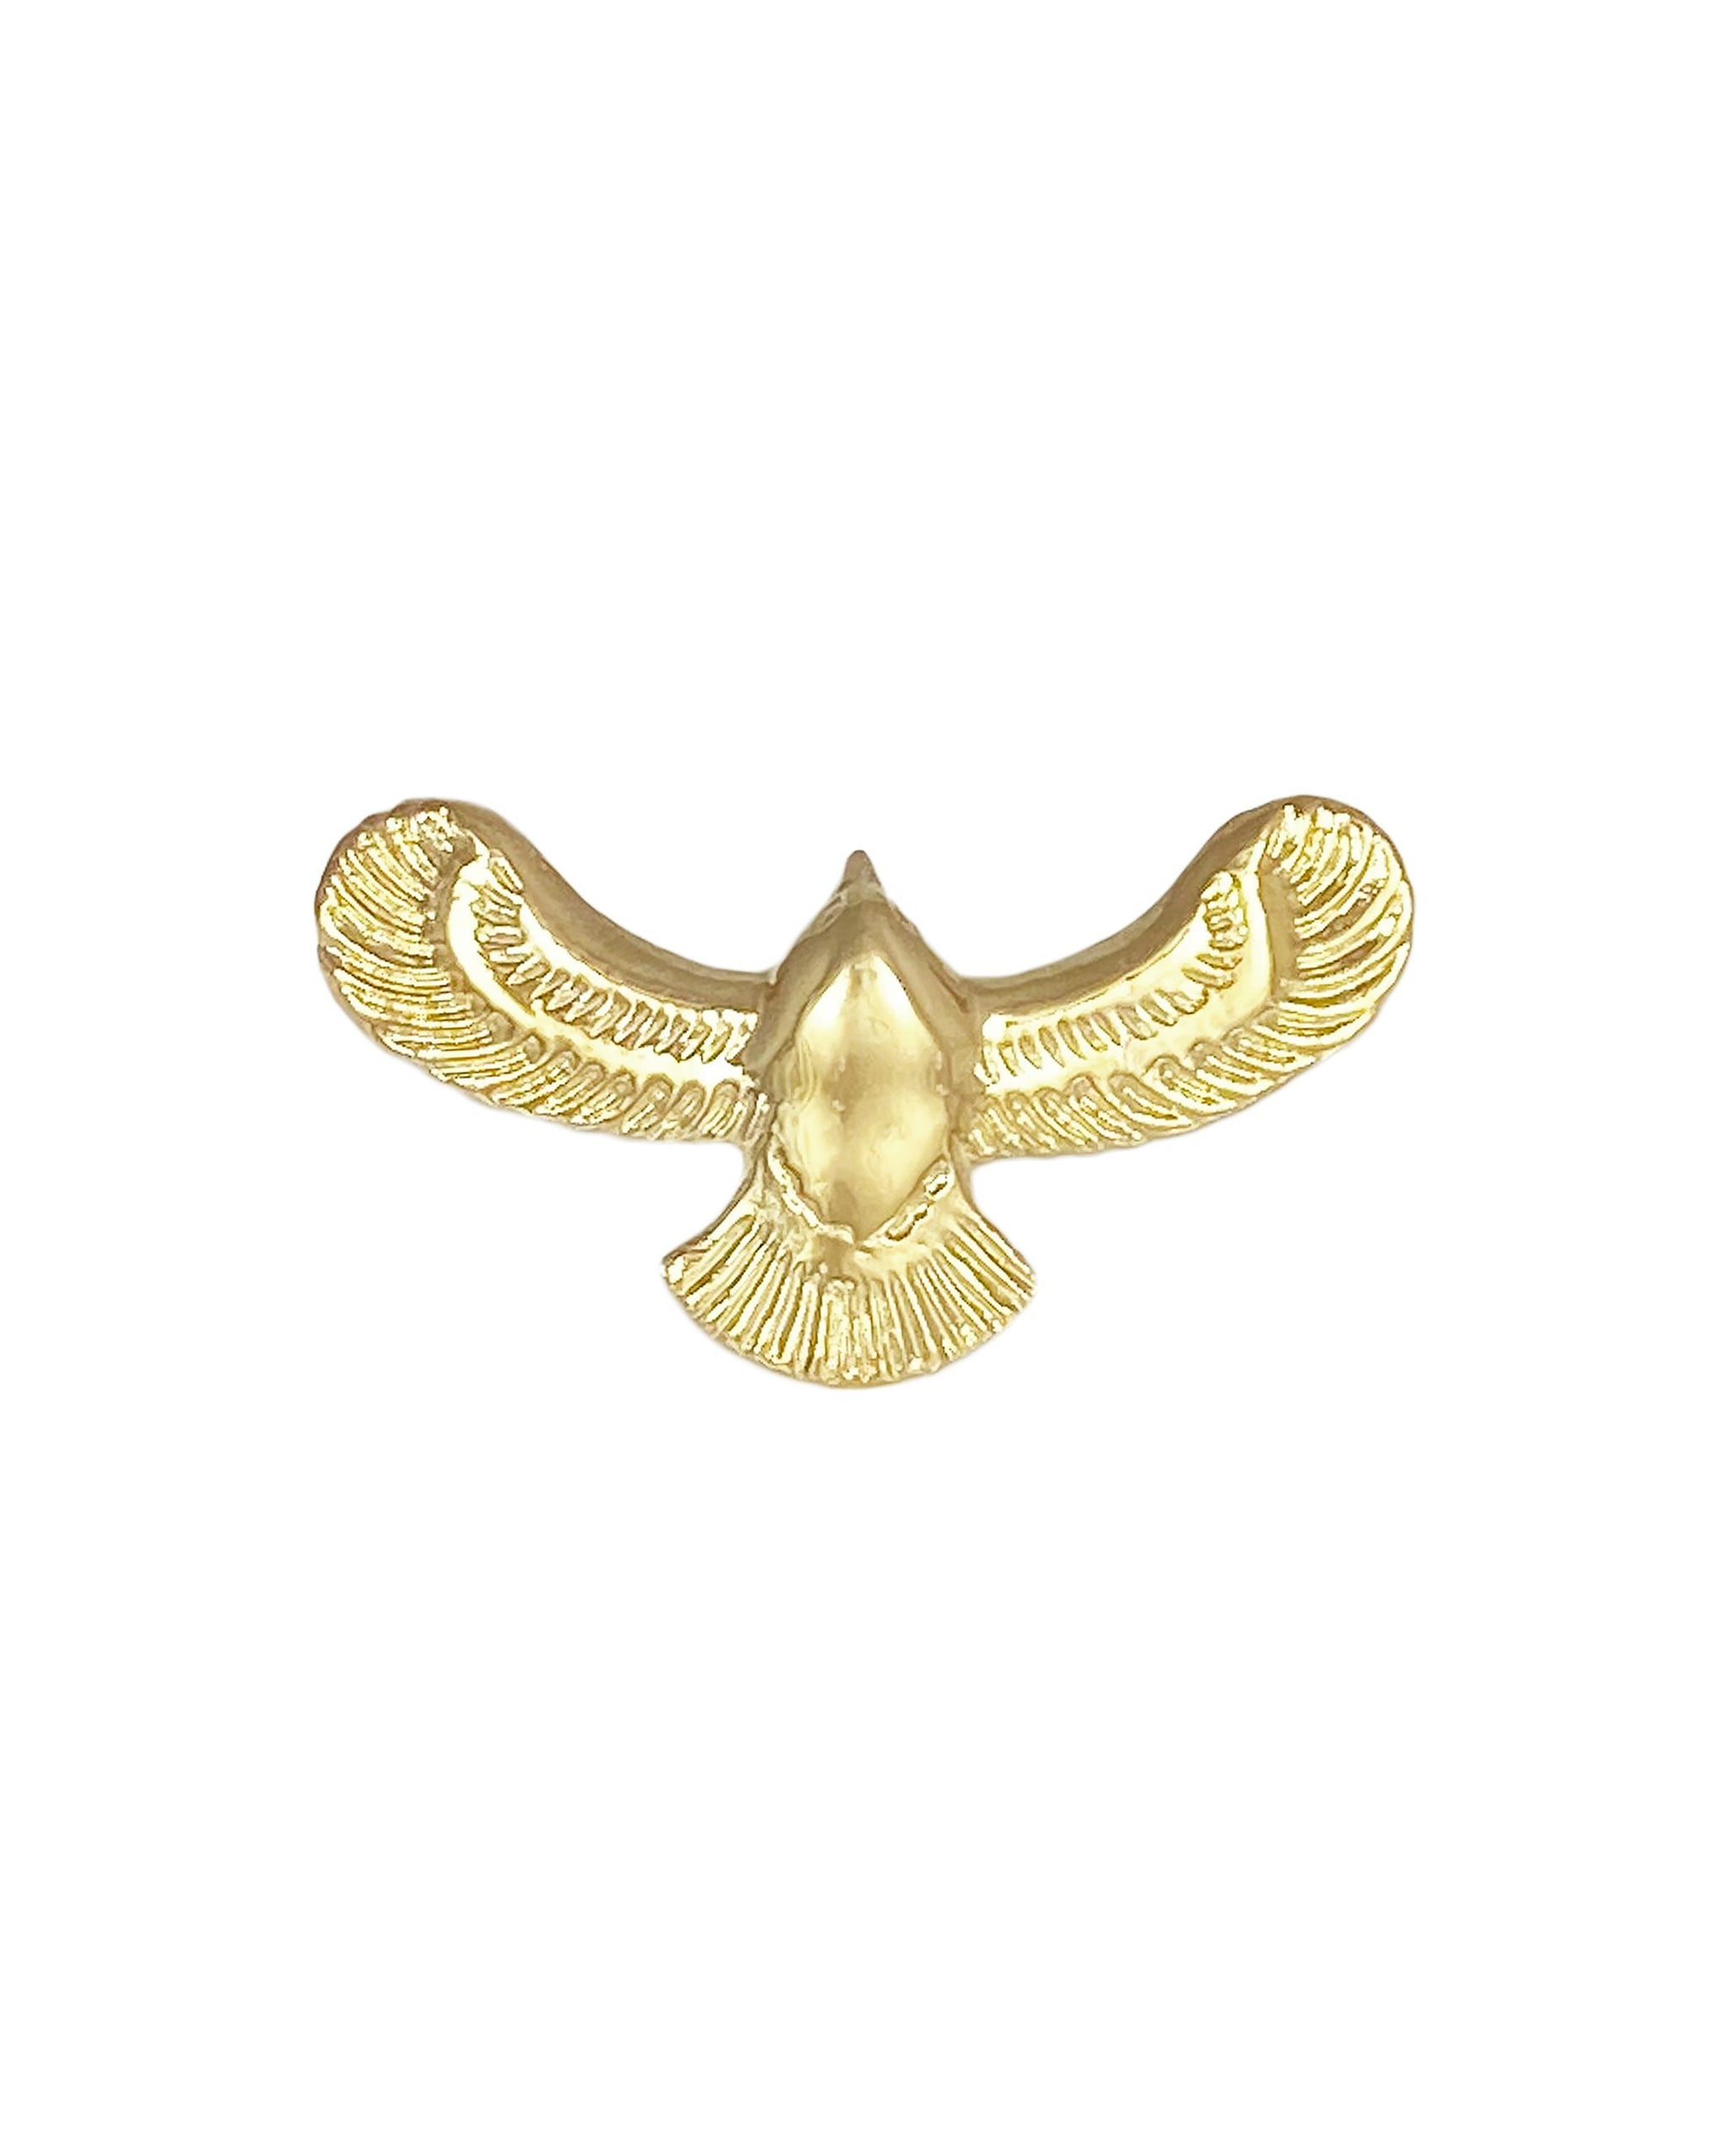 Fleetwood Ring, 14k Gold Vermeil Eagle Ring, Handmade by Turquoise + Tobacco in Los Angeles California